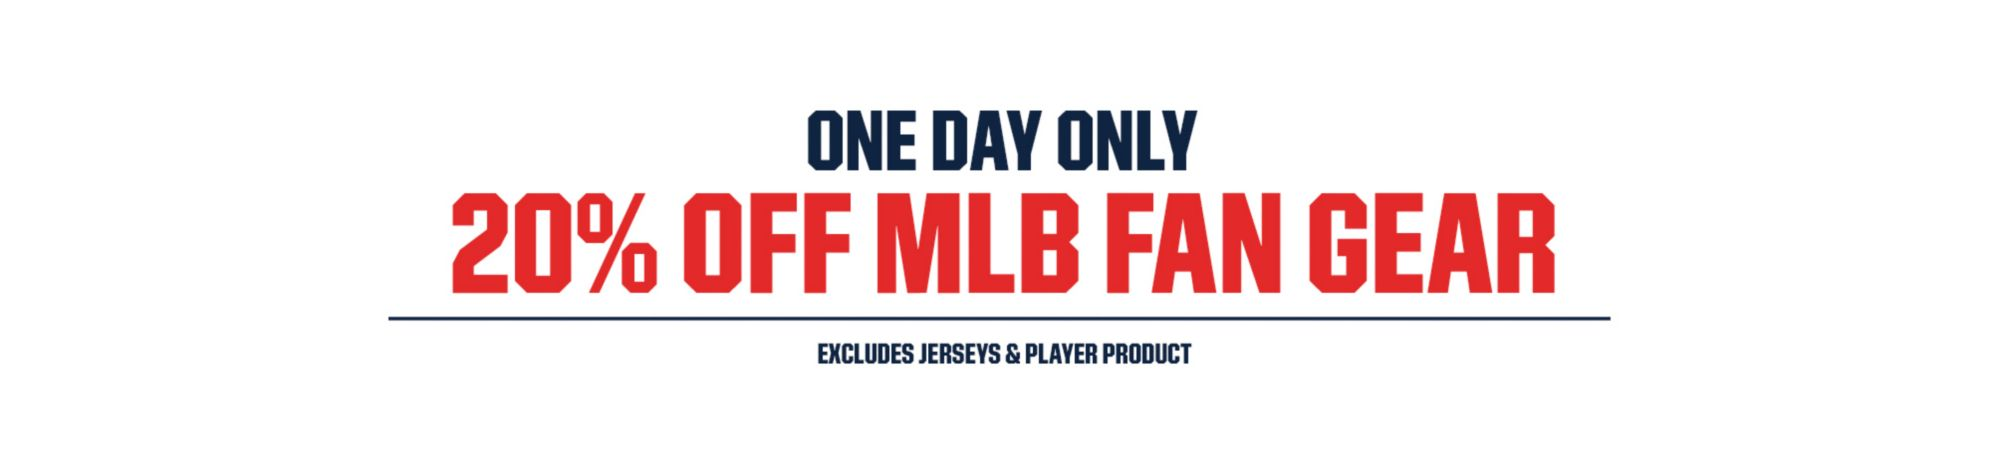 One Day Only MLB 20% Off Fan Gear Excludes Jerseys & Player Product